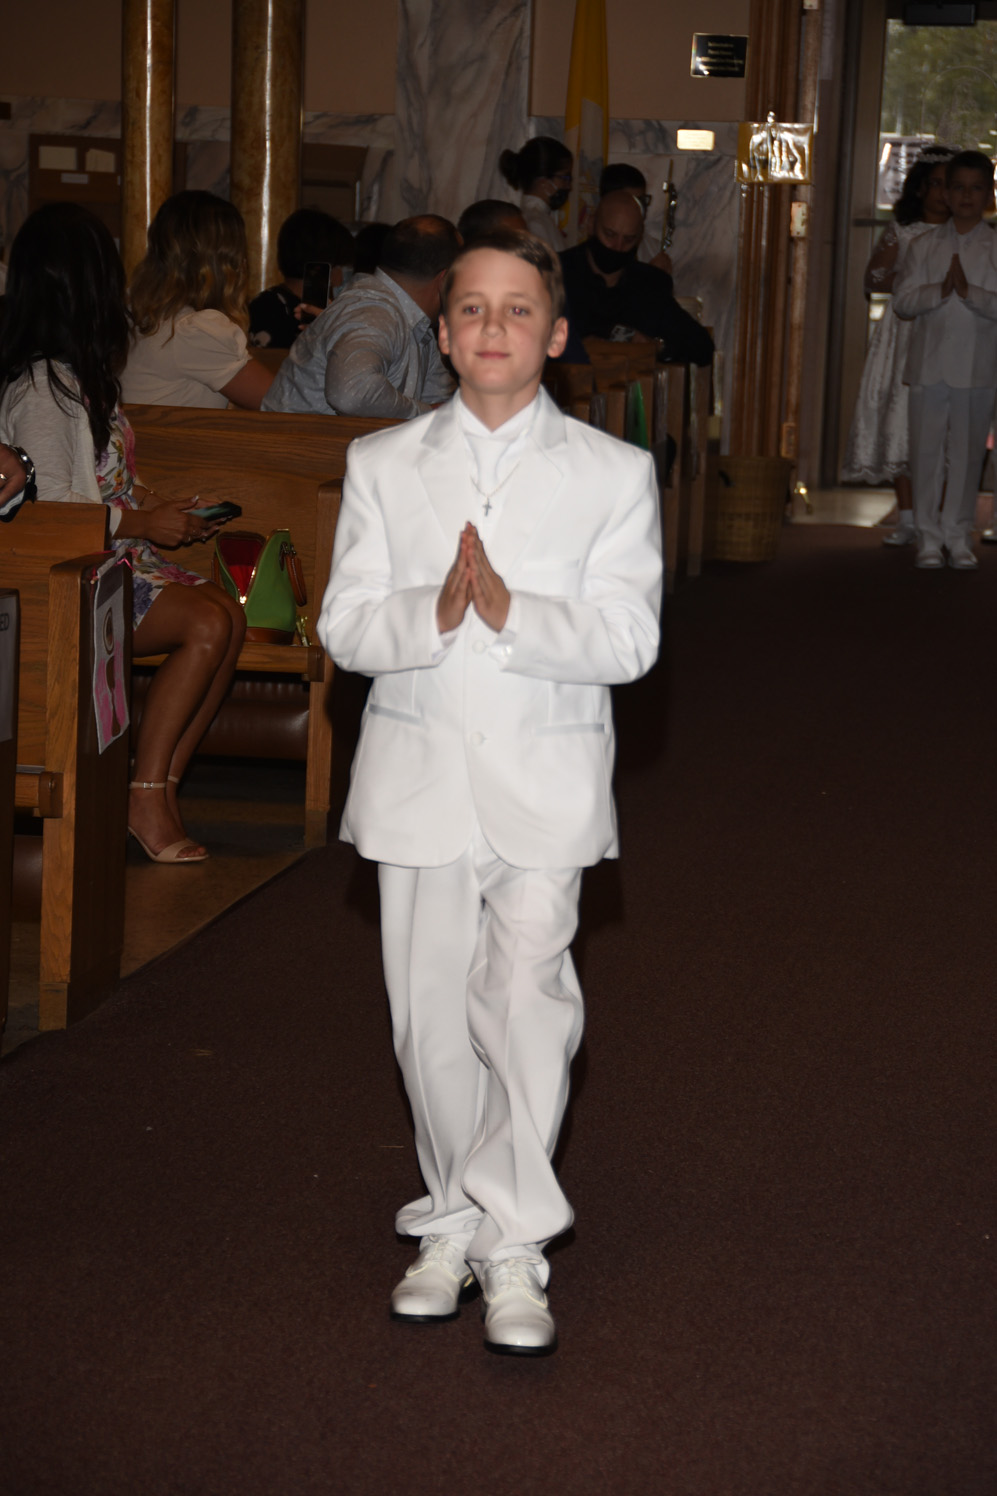 FIRST-COMMUNION-MAY-2-2021-1001001164